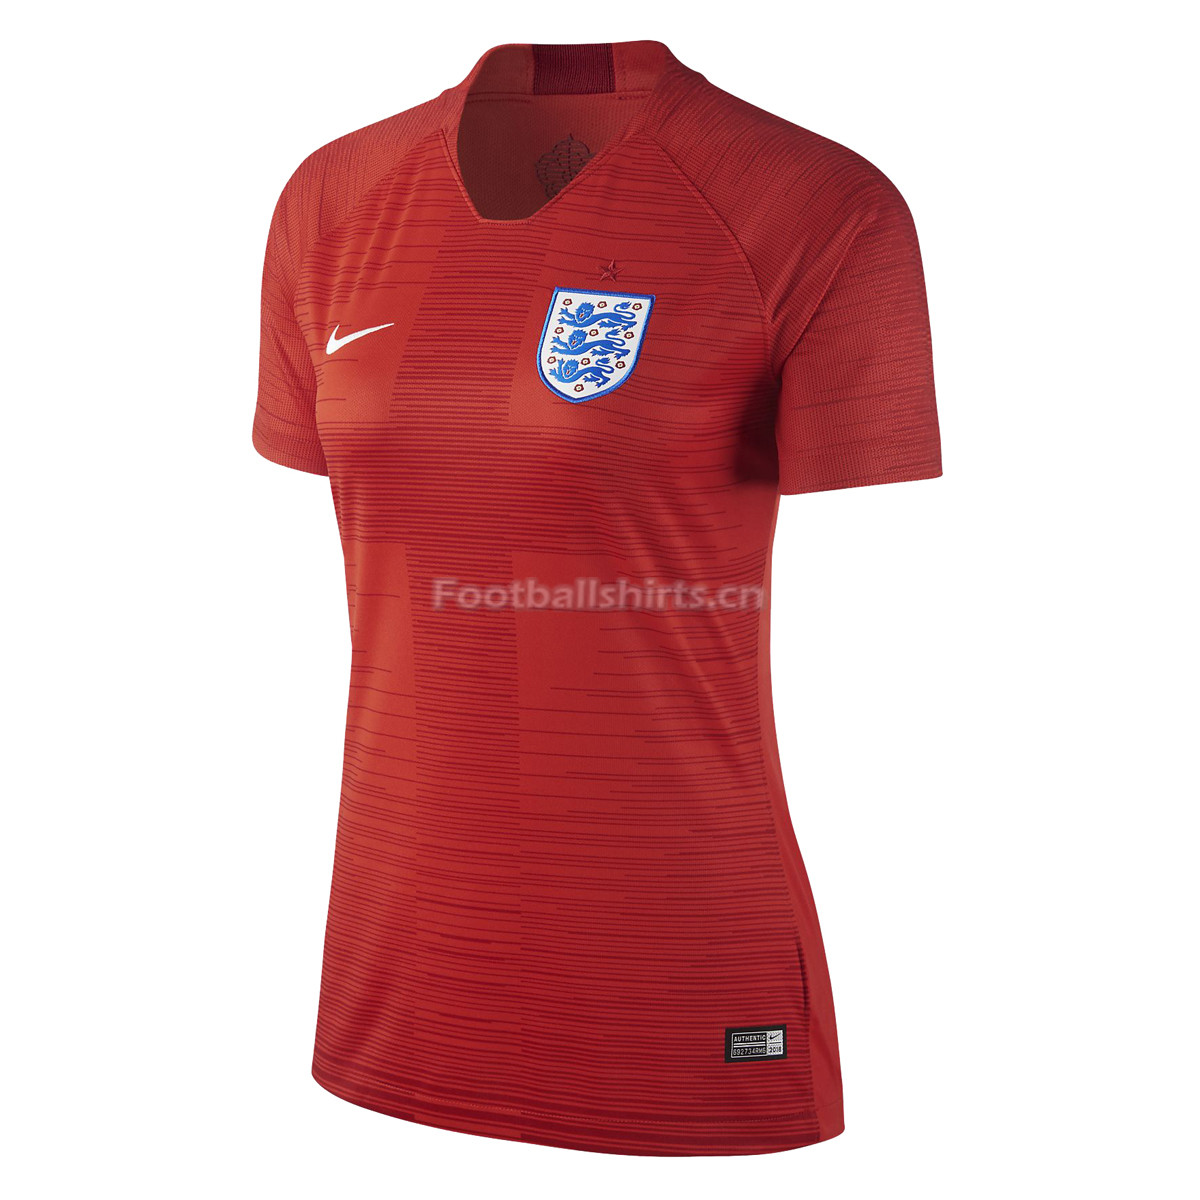 Match Version England 2018 FIFA World Cup Away Soccer Jersey